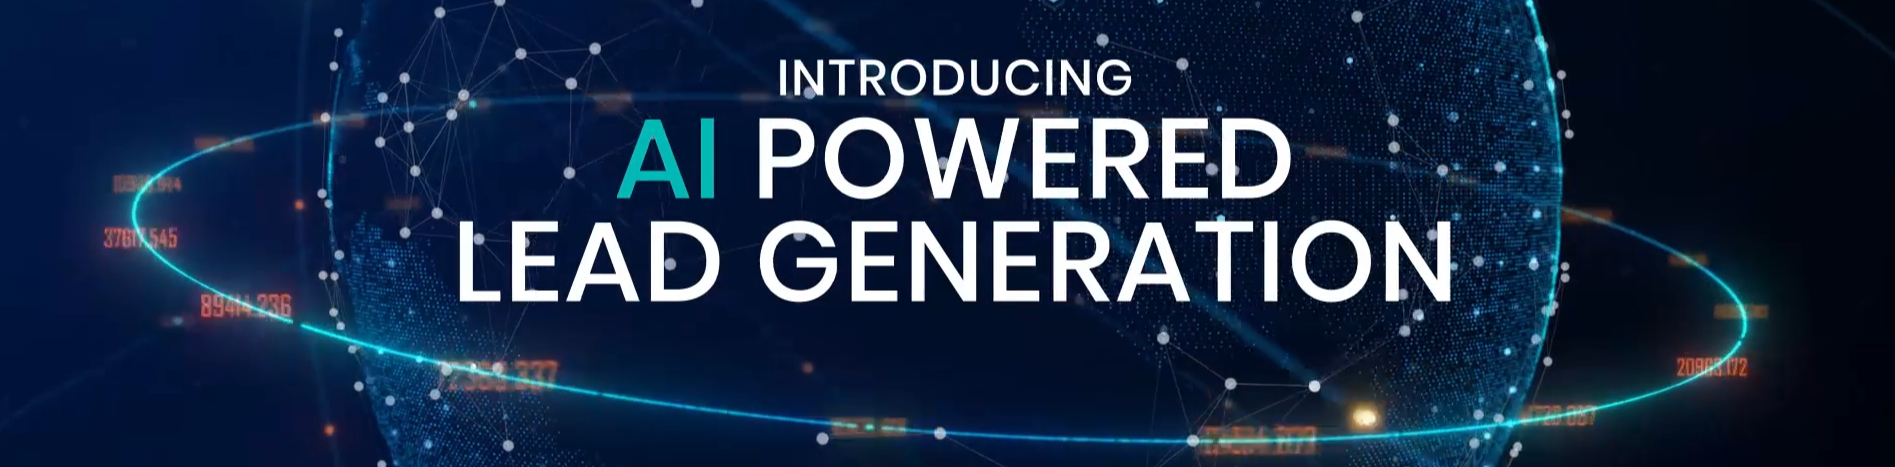 AI Powered Lead Generation